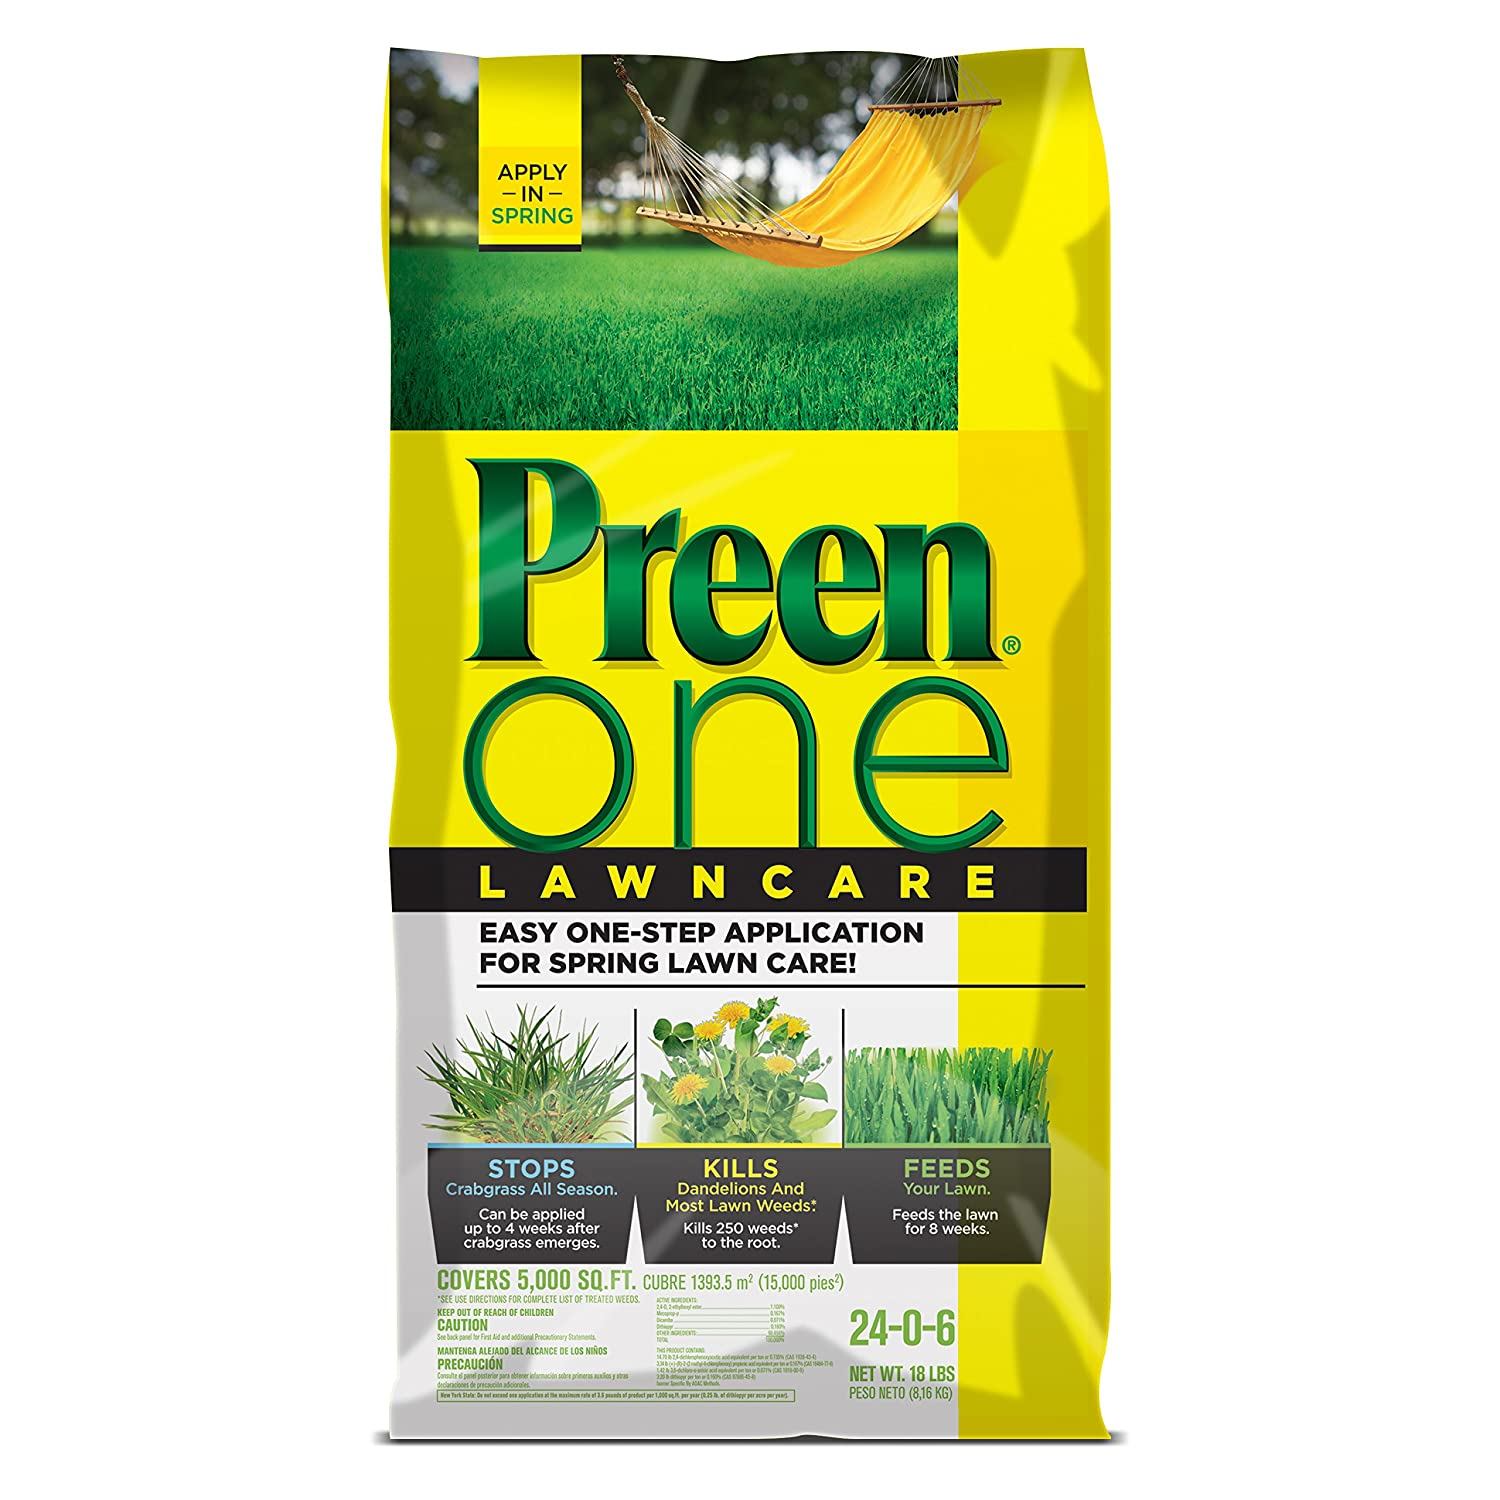 Preen 2164169 One LawnCare Weed & Feed-Covers 5,000 sq. ft